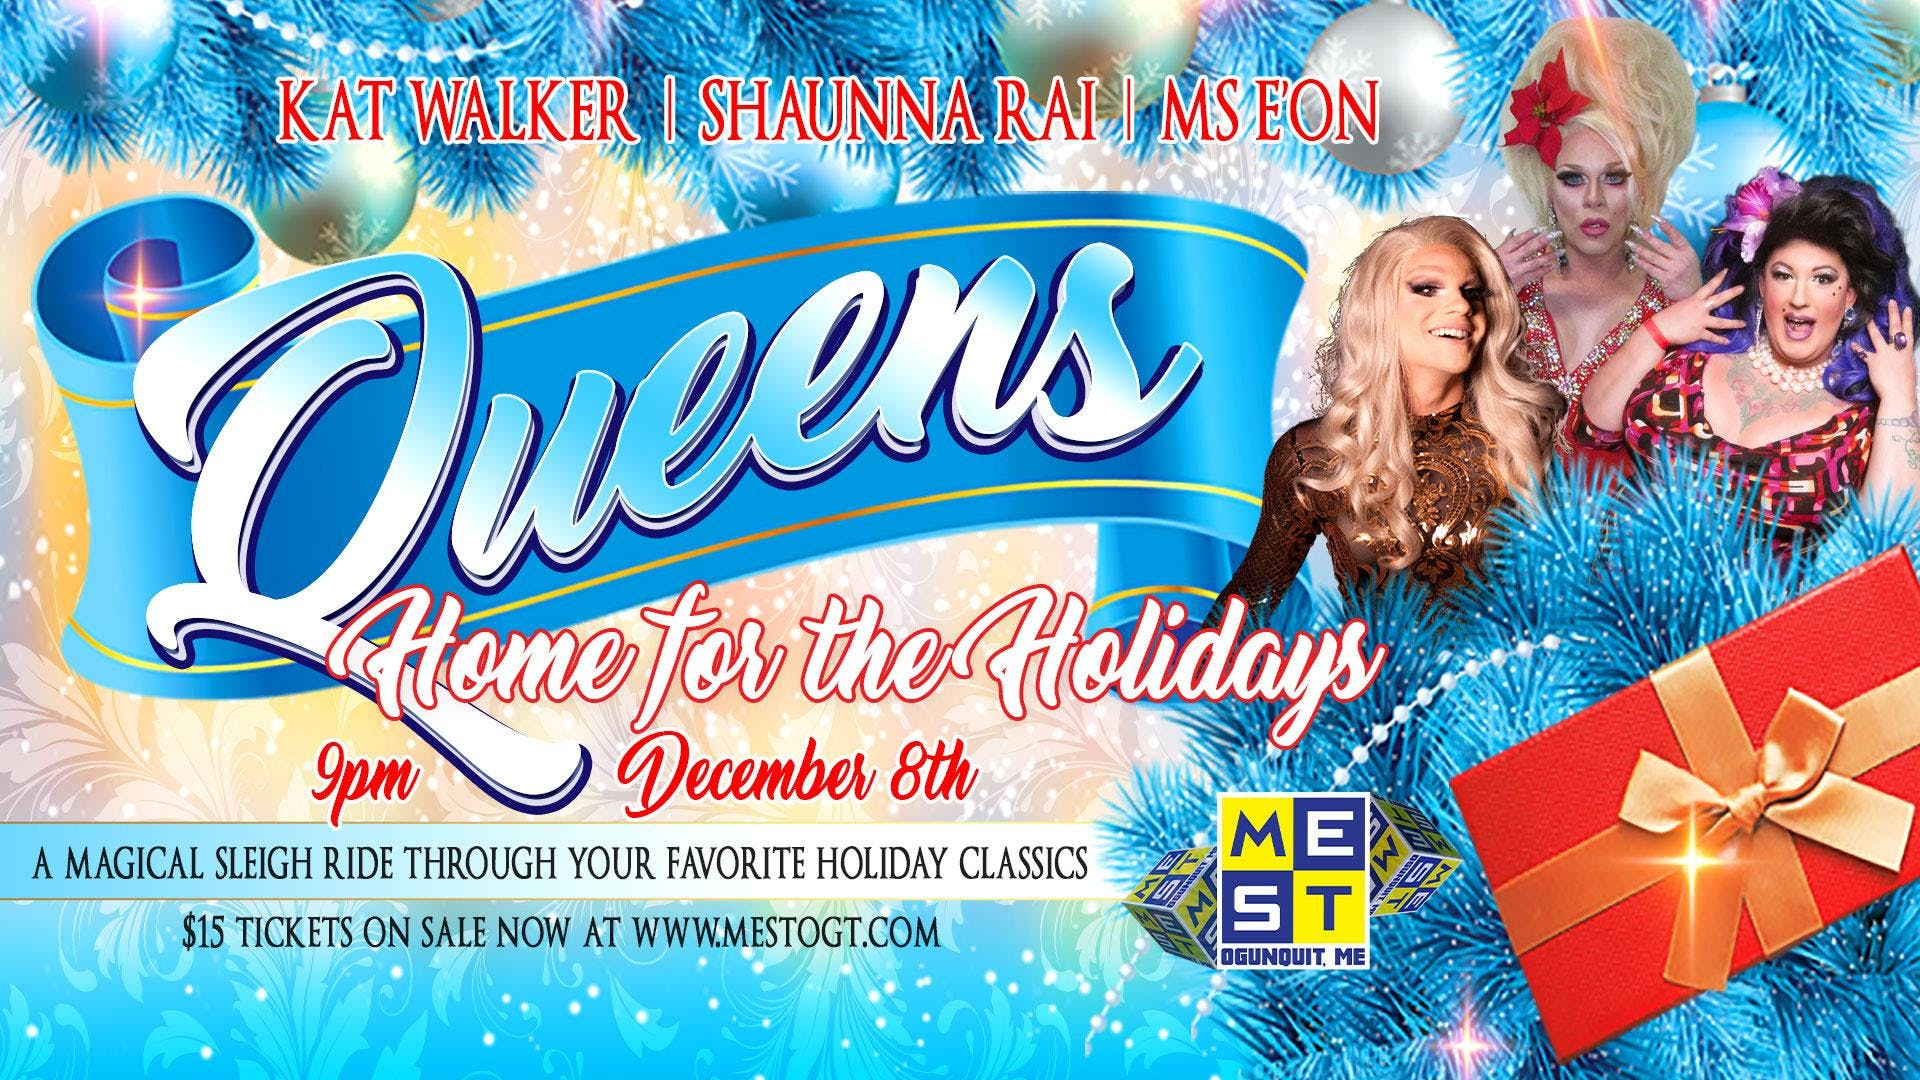 Queens, Home for the Holidays - 8 DEC 2018